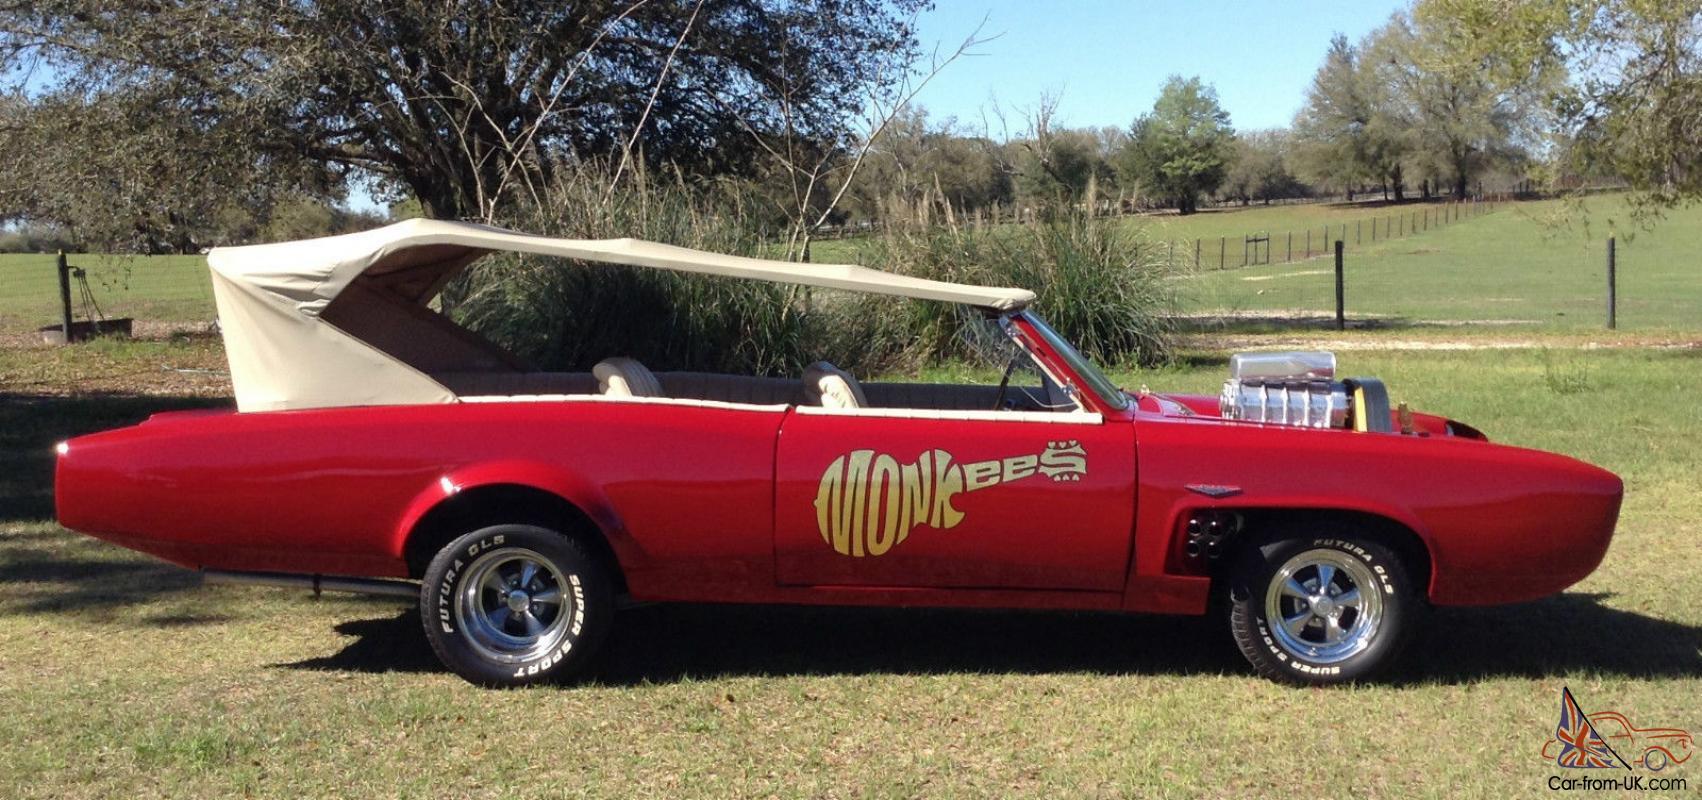 That Iconic Custom Classic Gto The Monkeemobile Styling By Dean